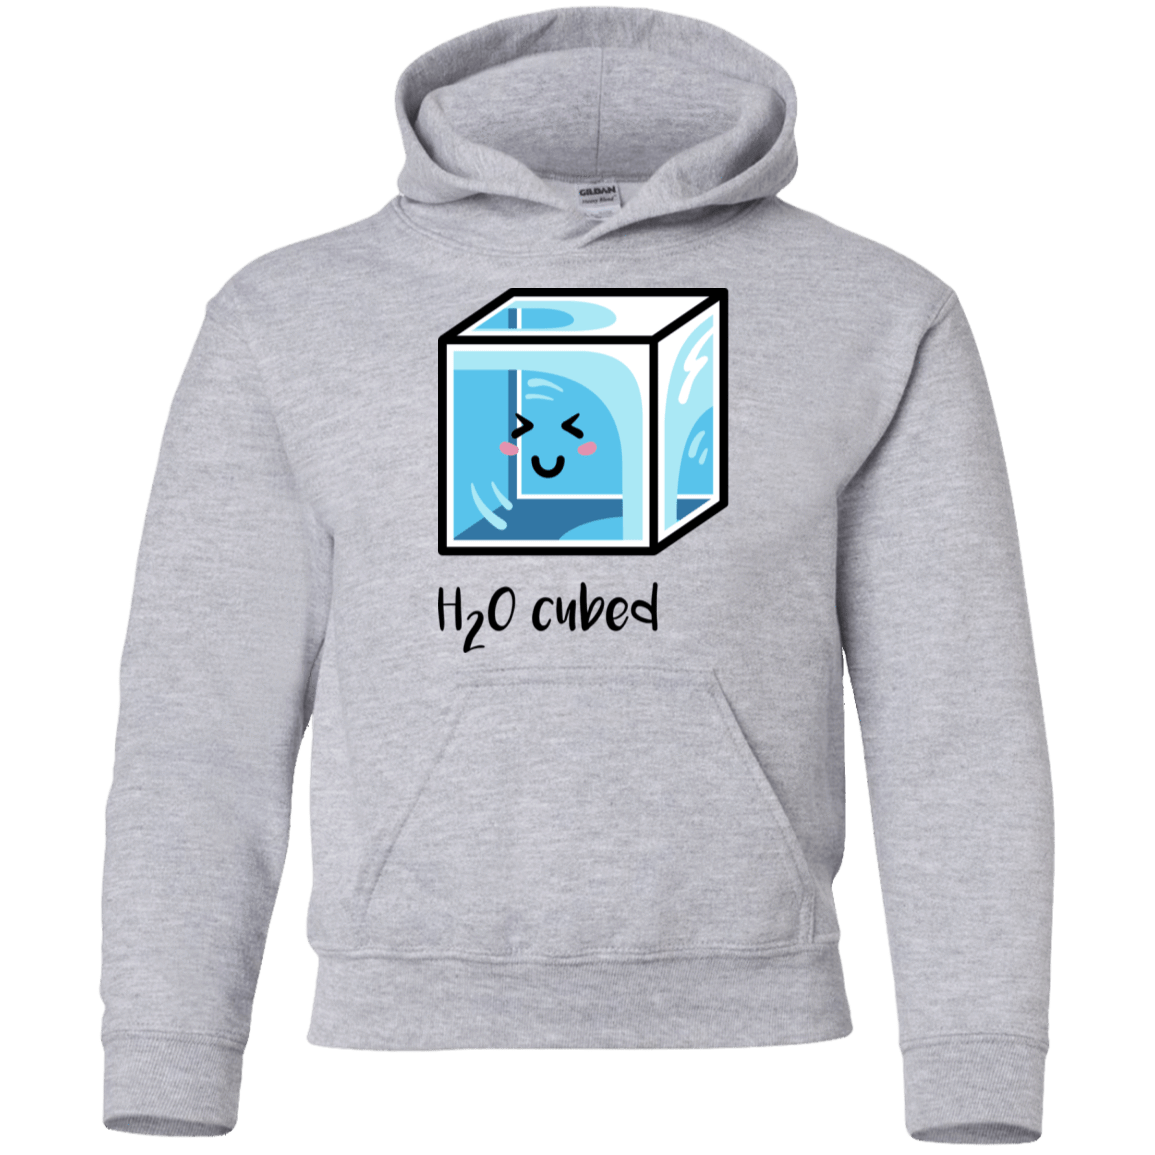 Sweatshirts Sport Grey / YS H2O Cubed Youth Hoodie